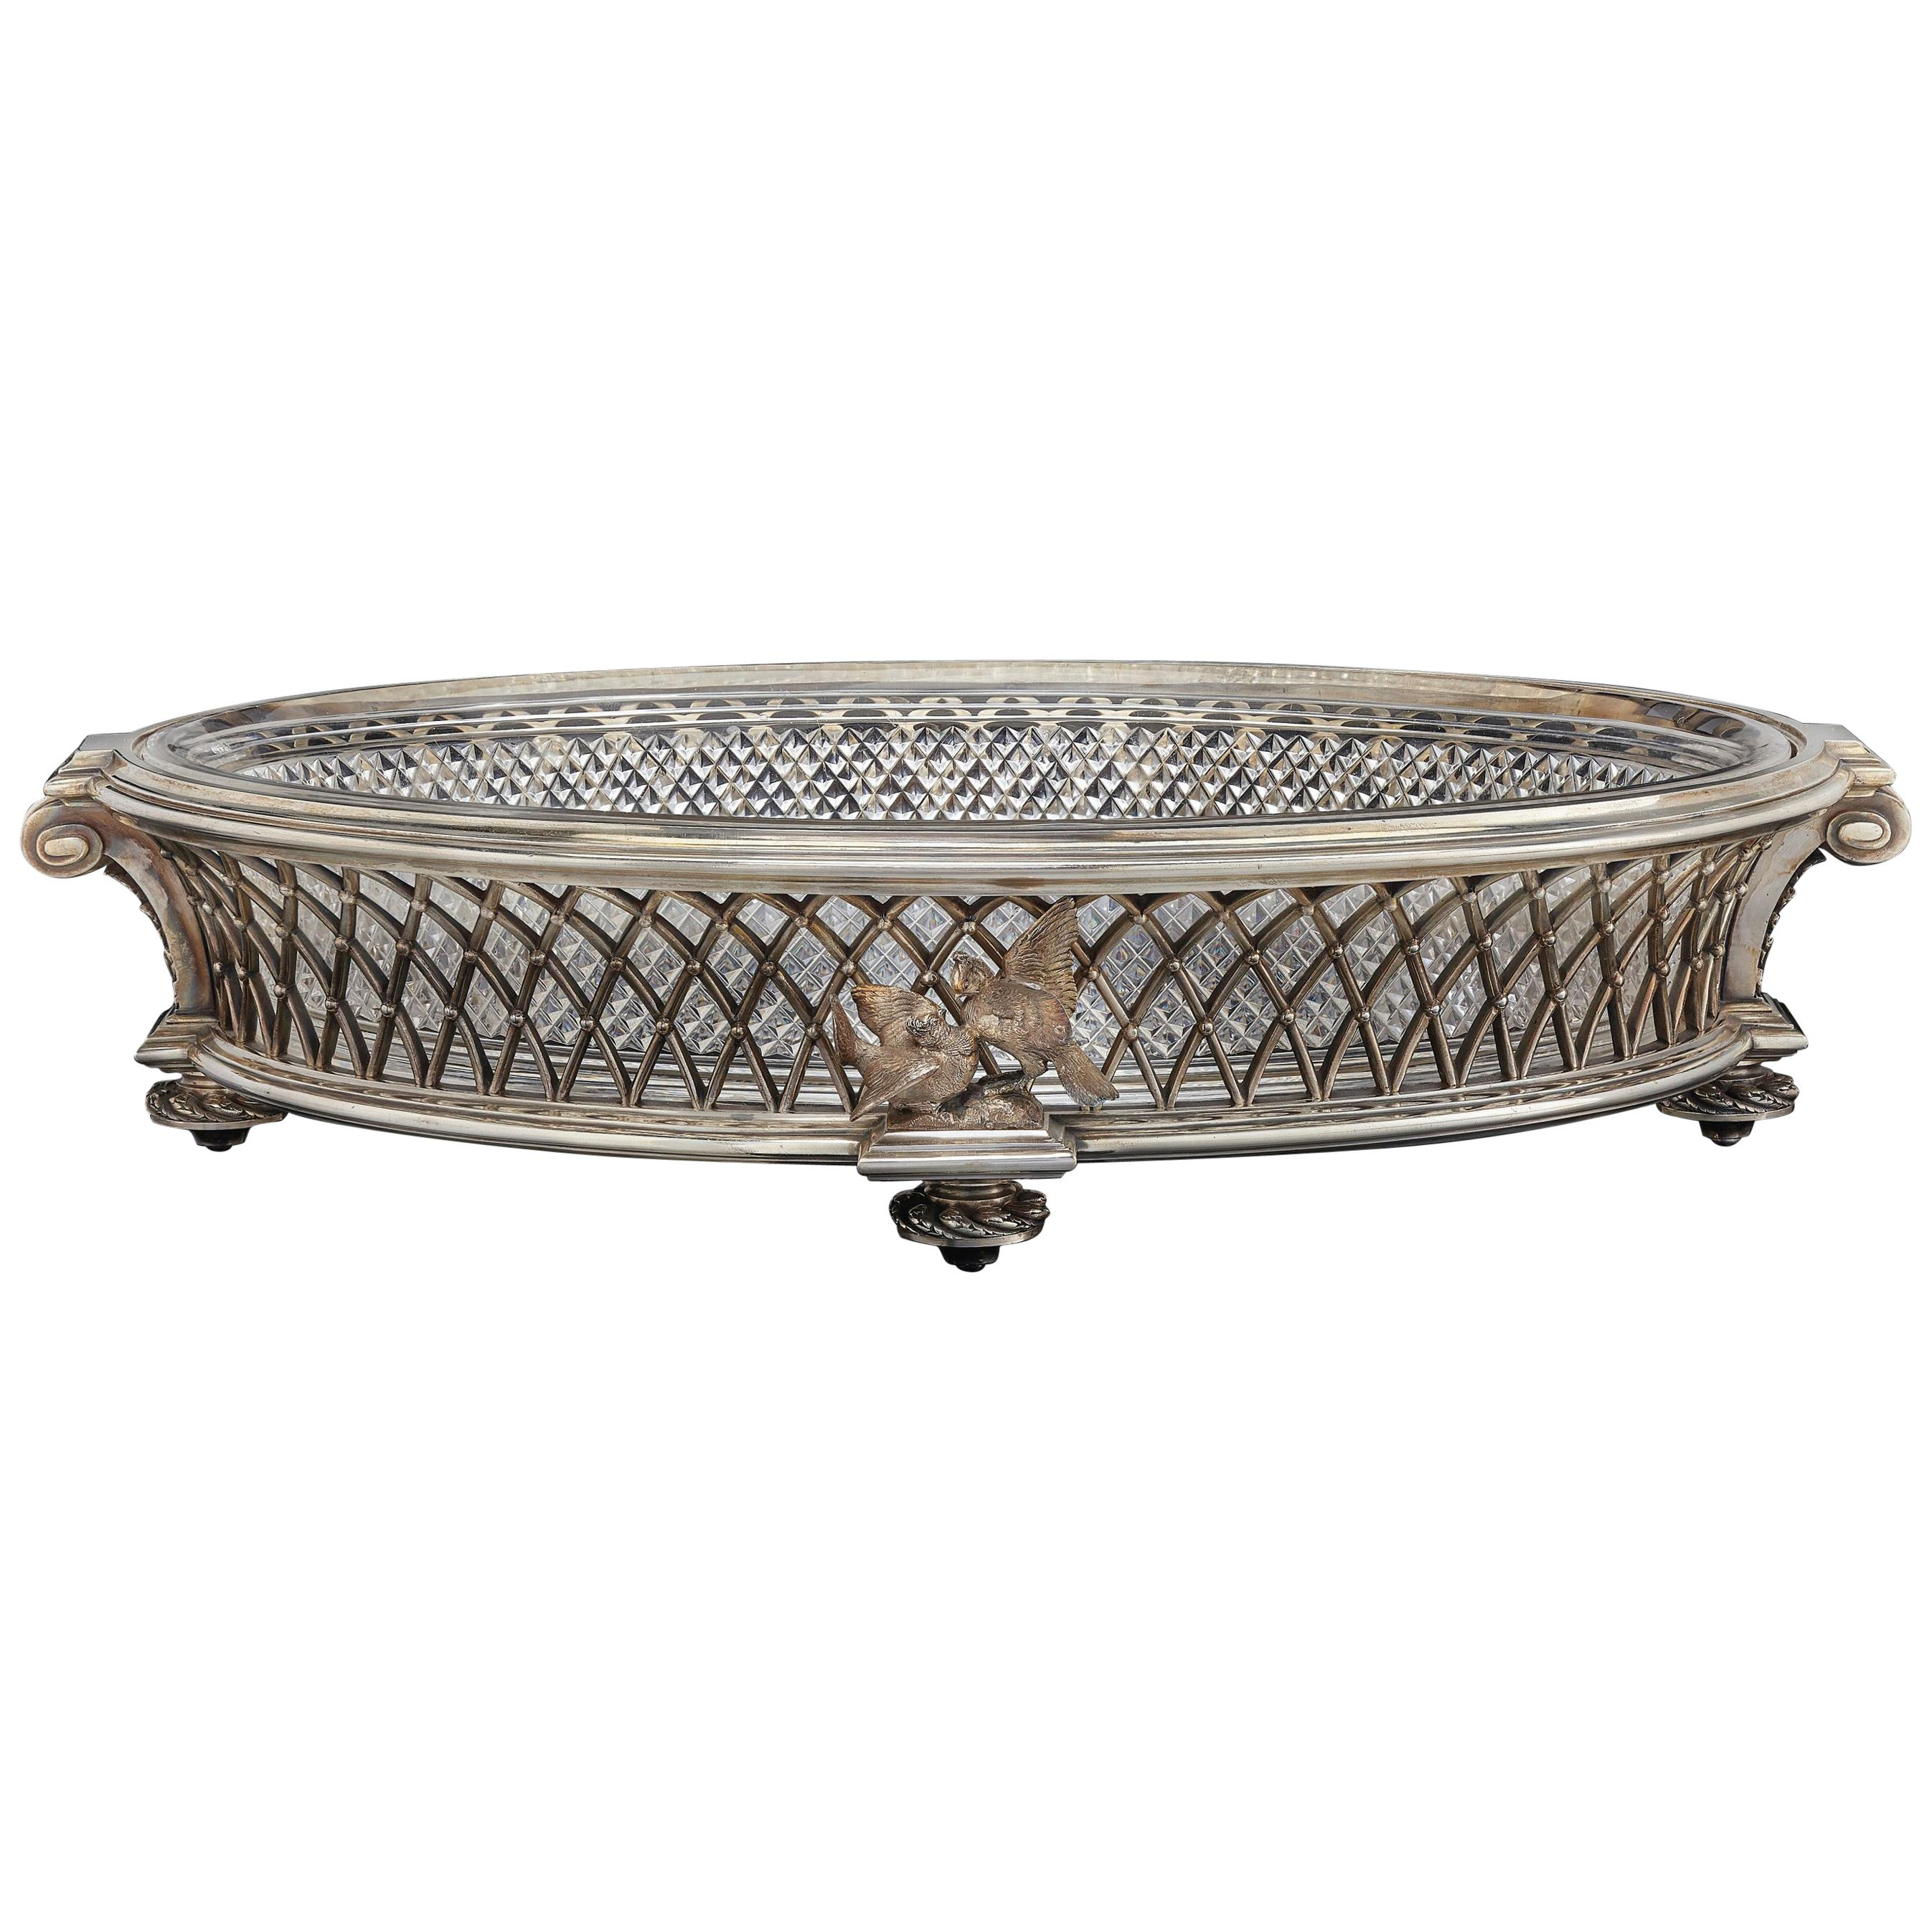 Cut-Crystal and Silver Plated Centrepiece by Baccarat, circa 1890